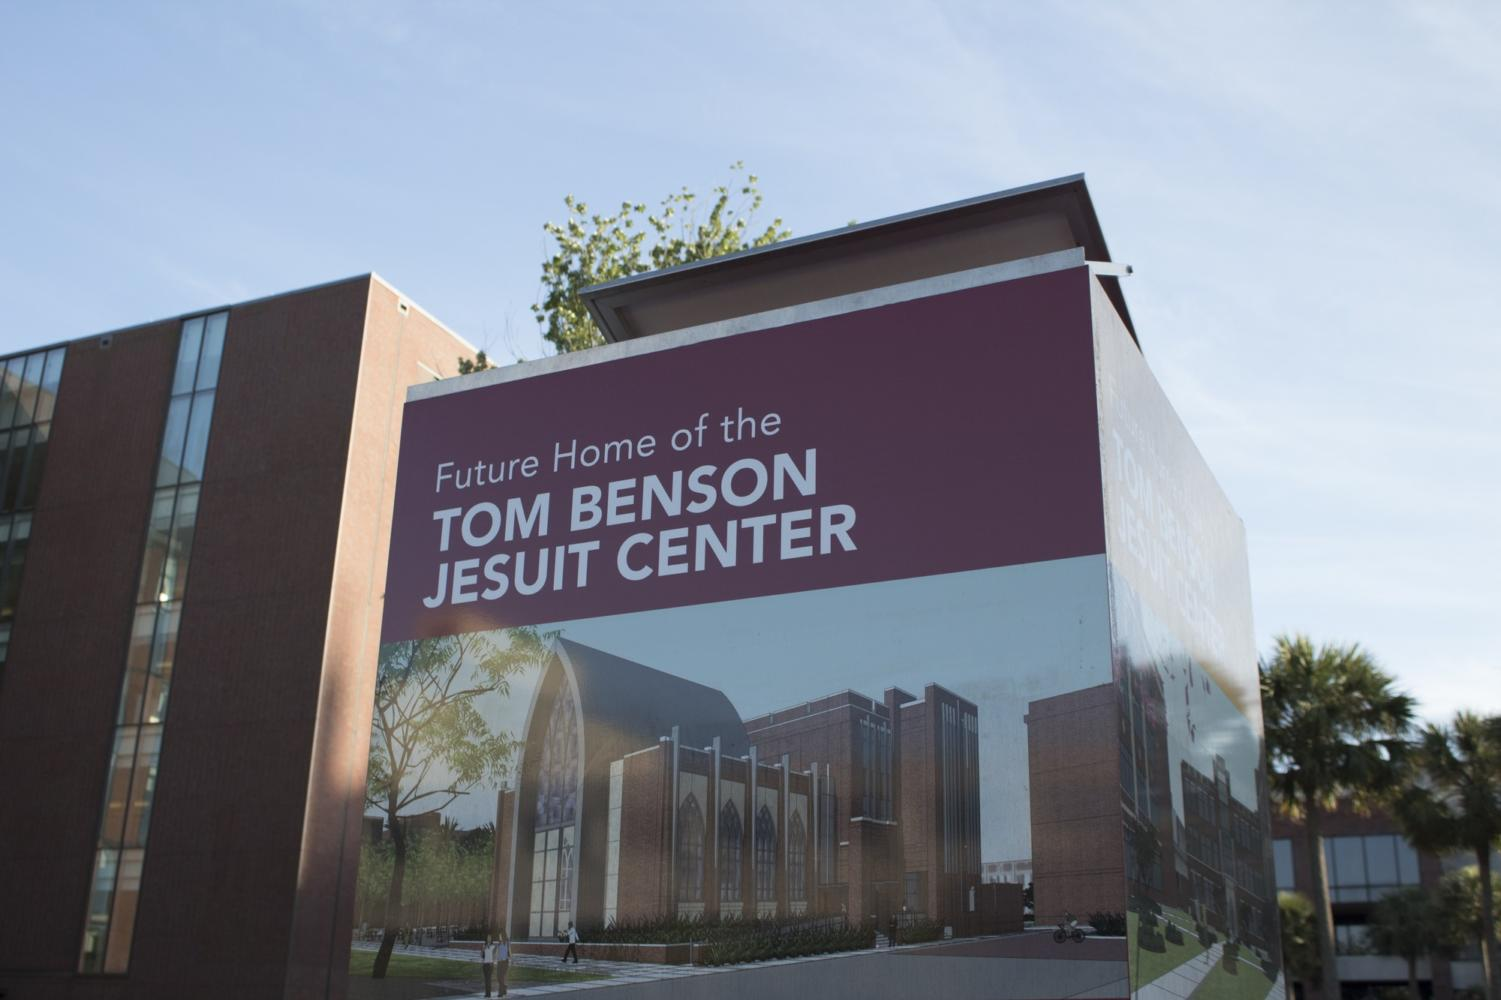 The sign for the future site of Tom Benson Jesuit Center stands between Monroe Hall and the sculpture garden. CHRISTIAN ORELLANA/The Maroon. Photo credit: Cristian Orellana